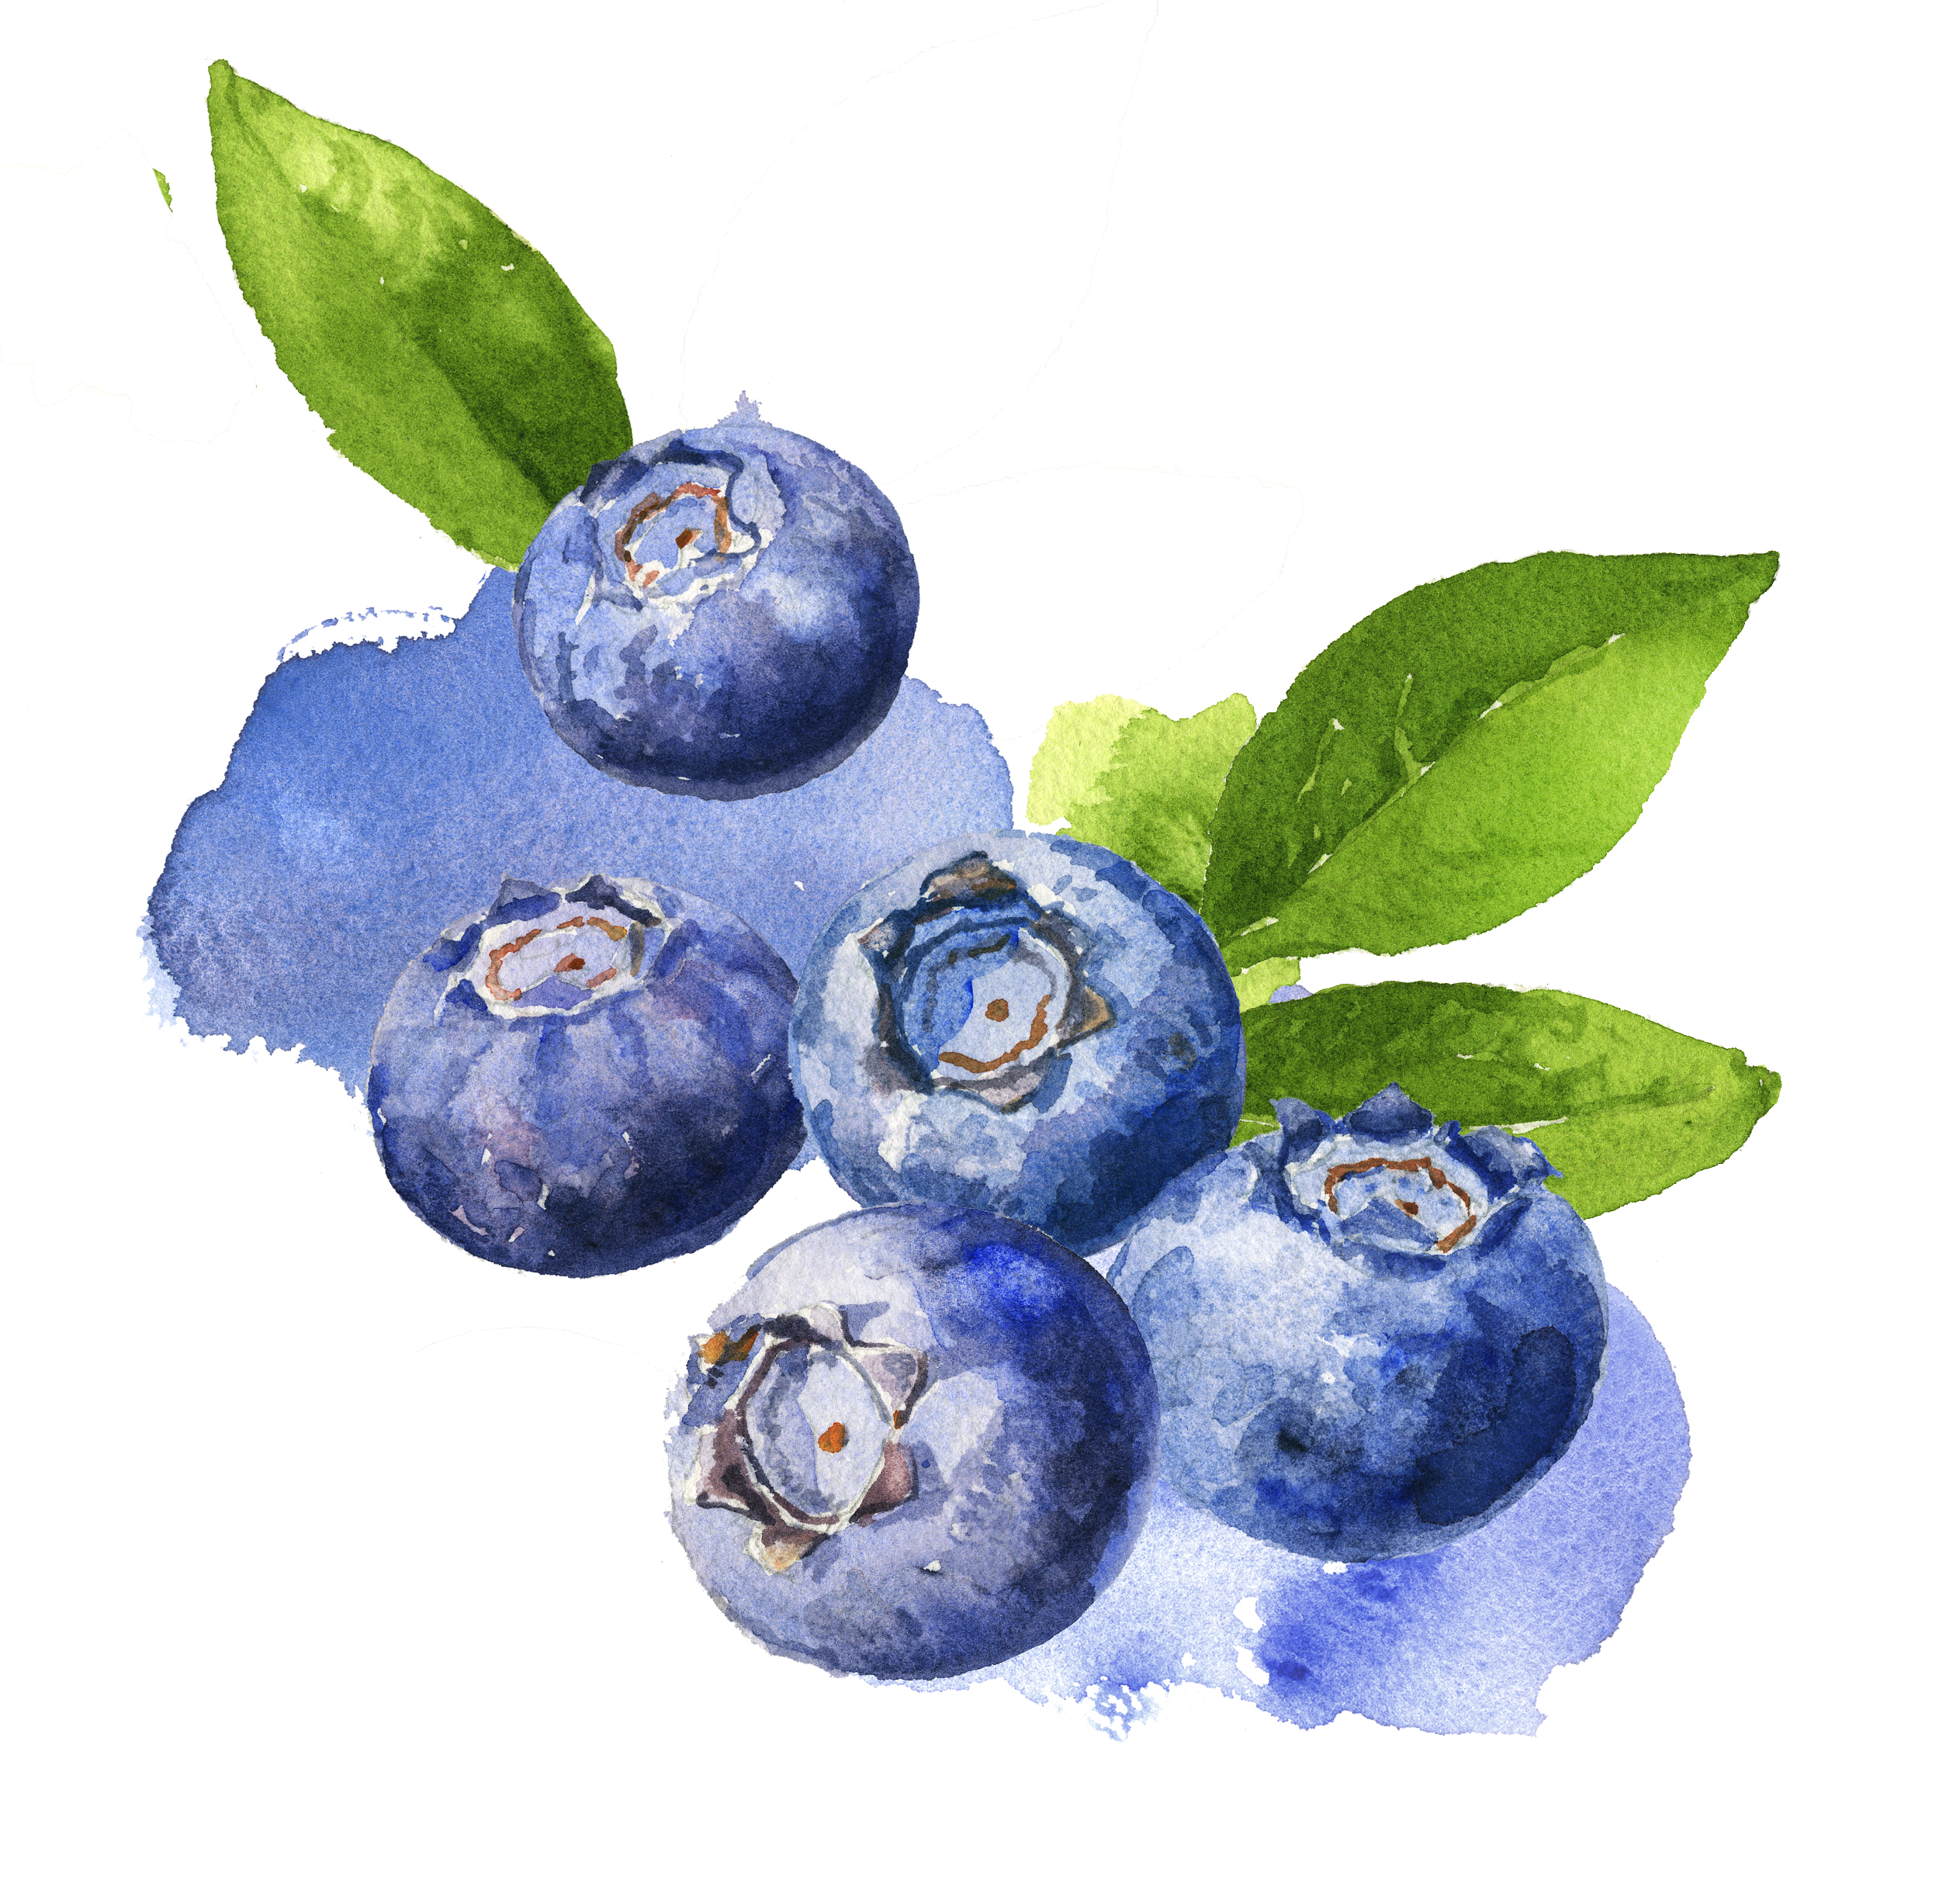 blueberries150.jpg